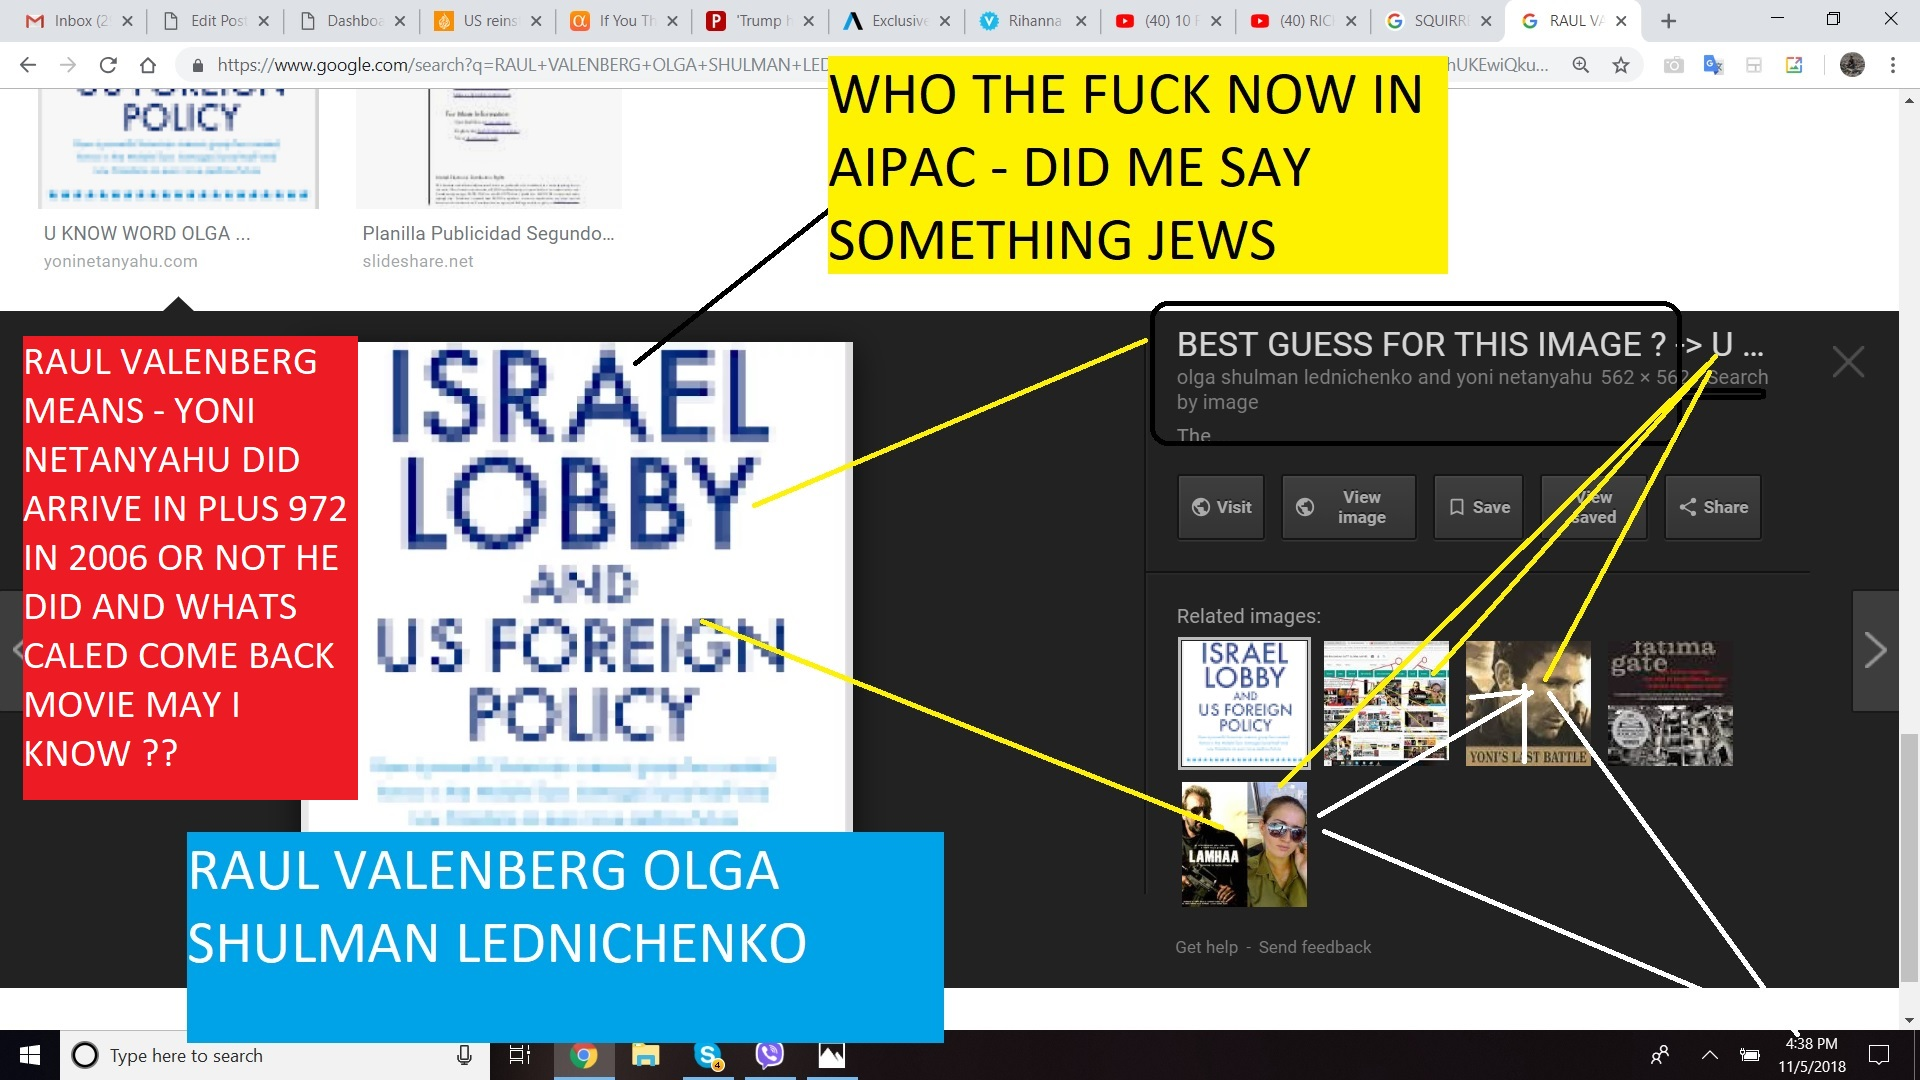 RAUL VALENBERG MEANS - YONI NETANYAHU DID ARRIVE OR NOT HE DID AND WHATS CALED COME BACK MOVIE MAY I KNOW